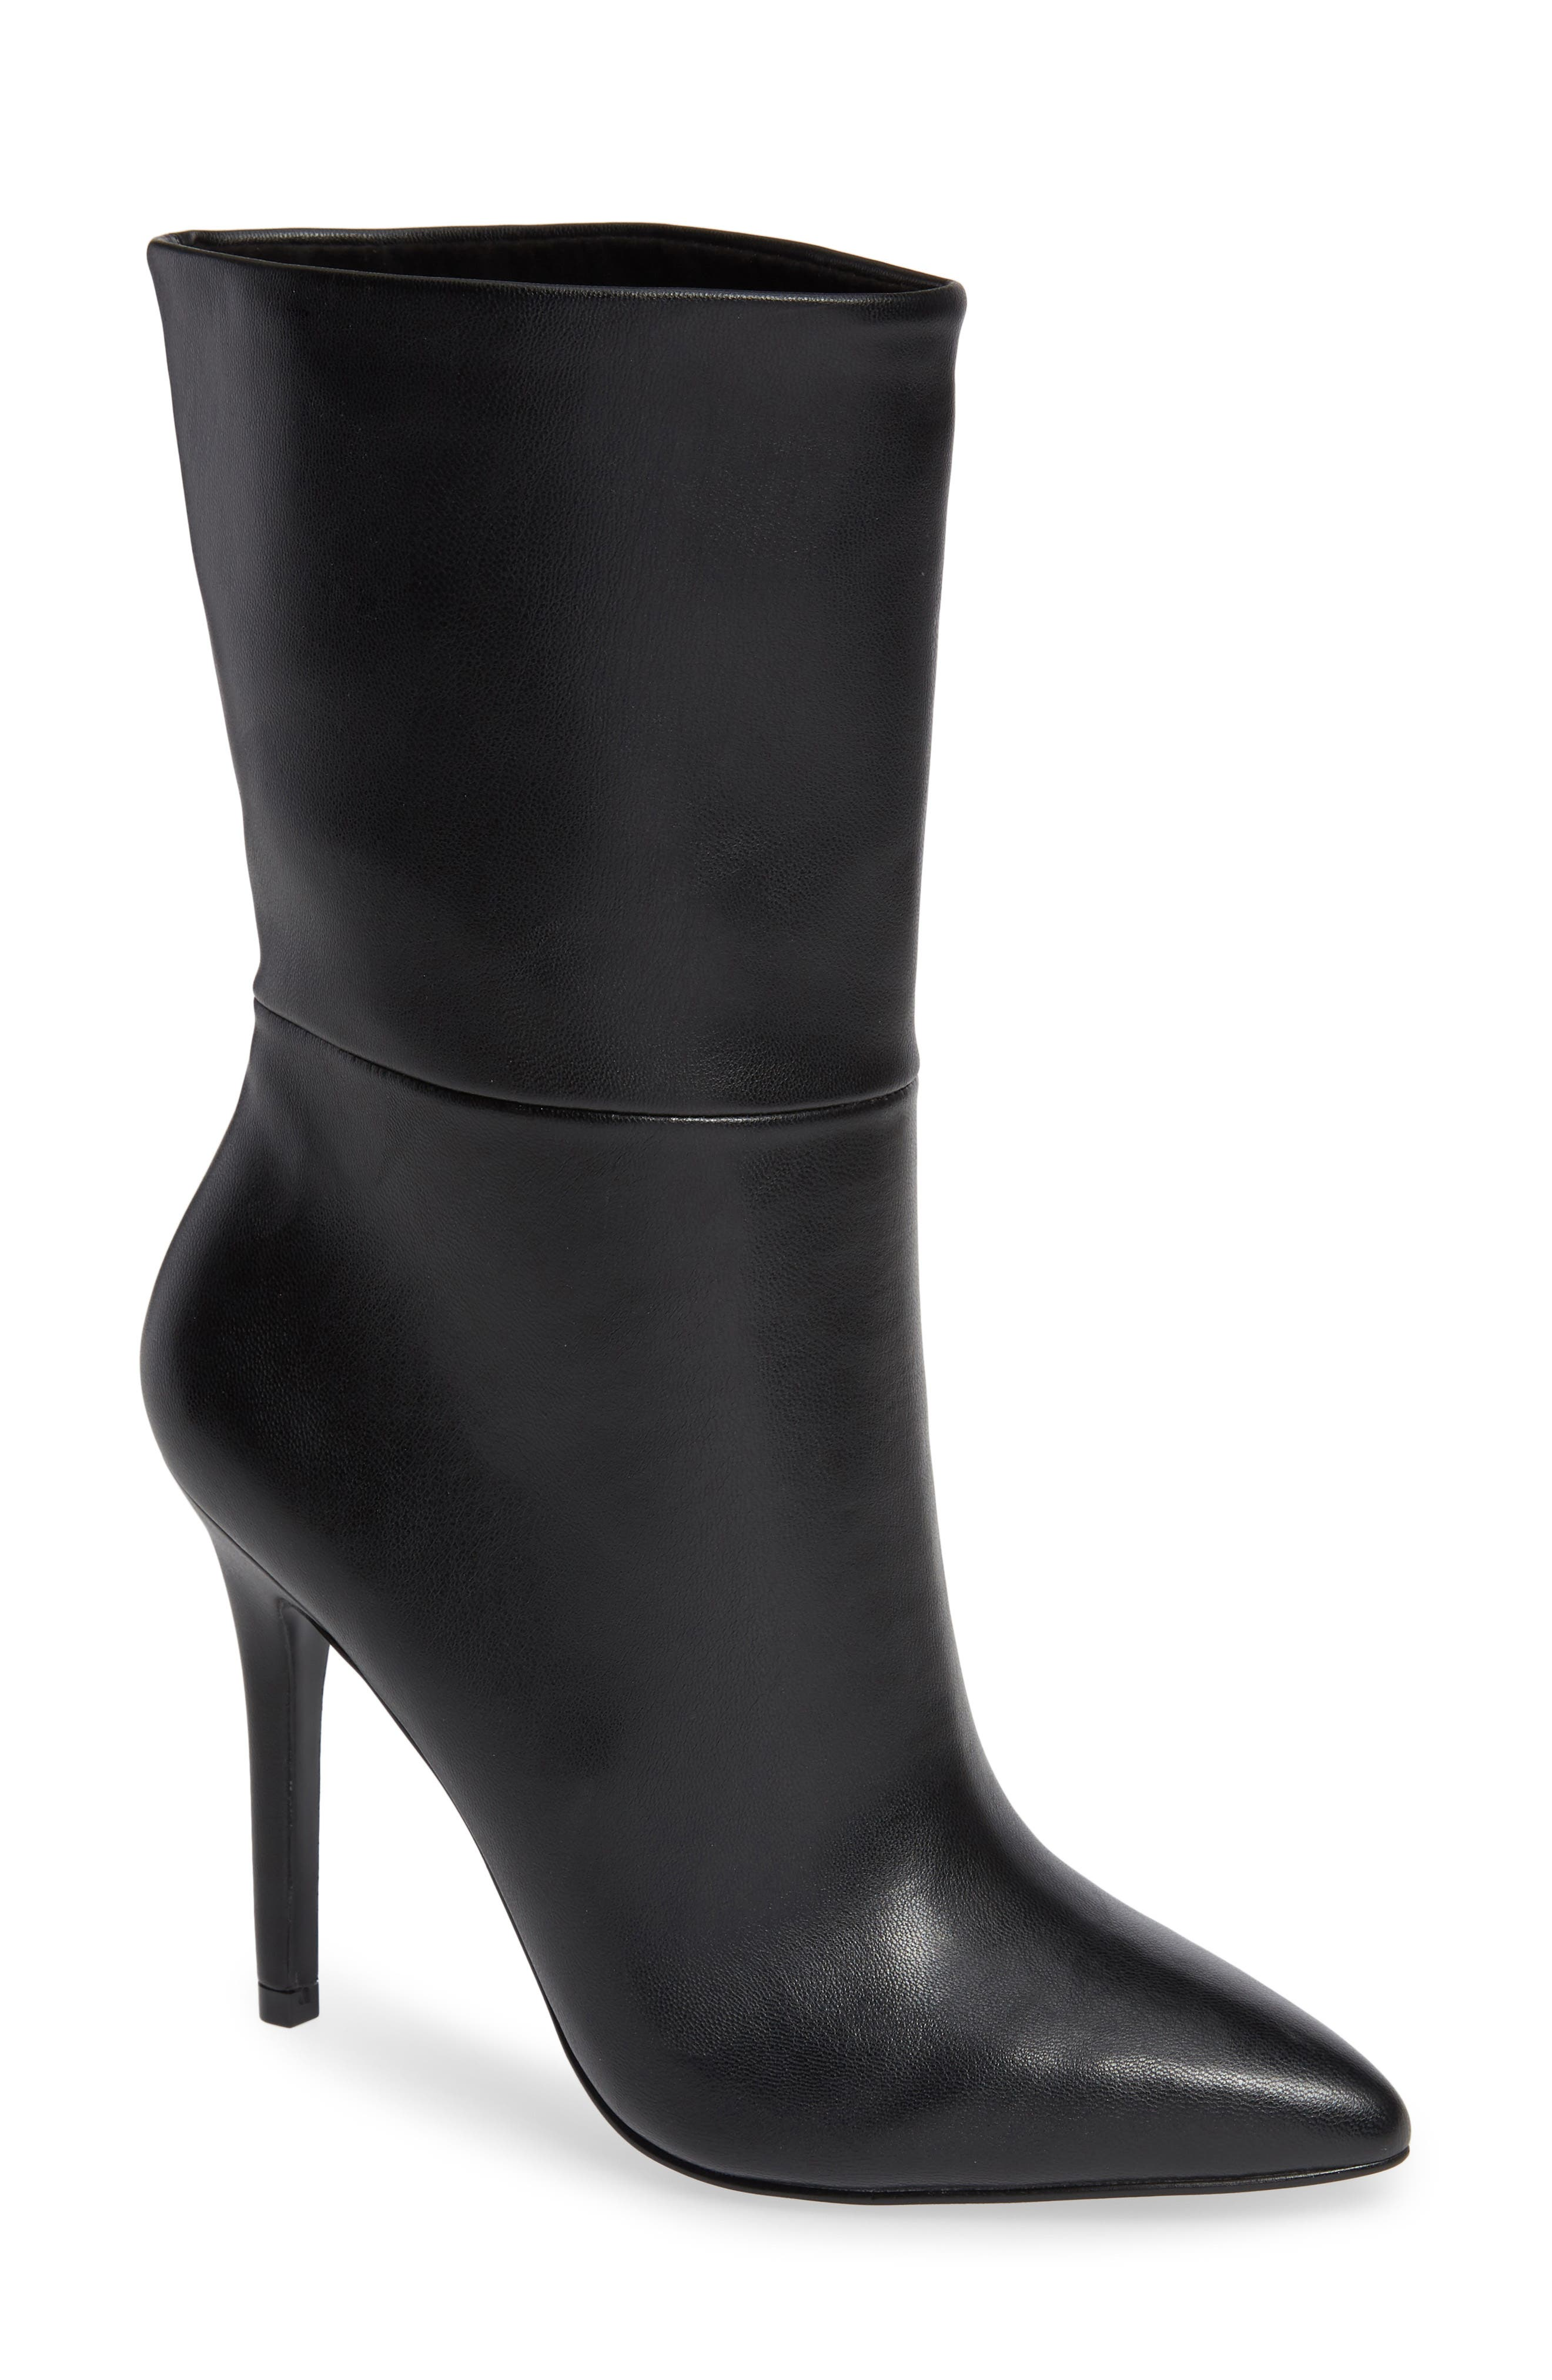 CHARLES BY CHARLES DAVID Palisades Bootie, Main, color, BLACK FAUX LEATHER